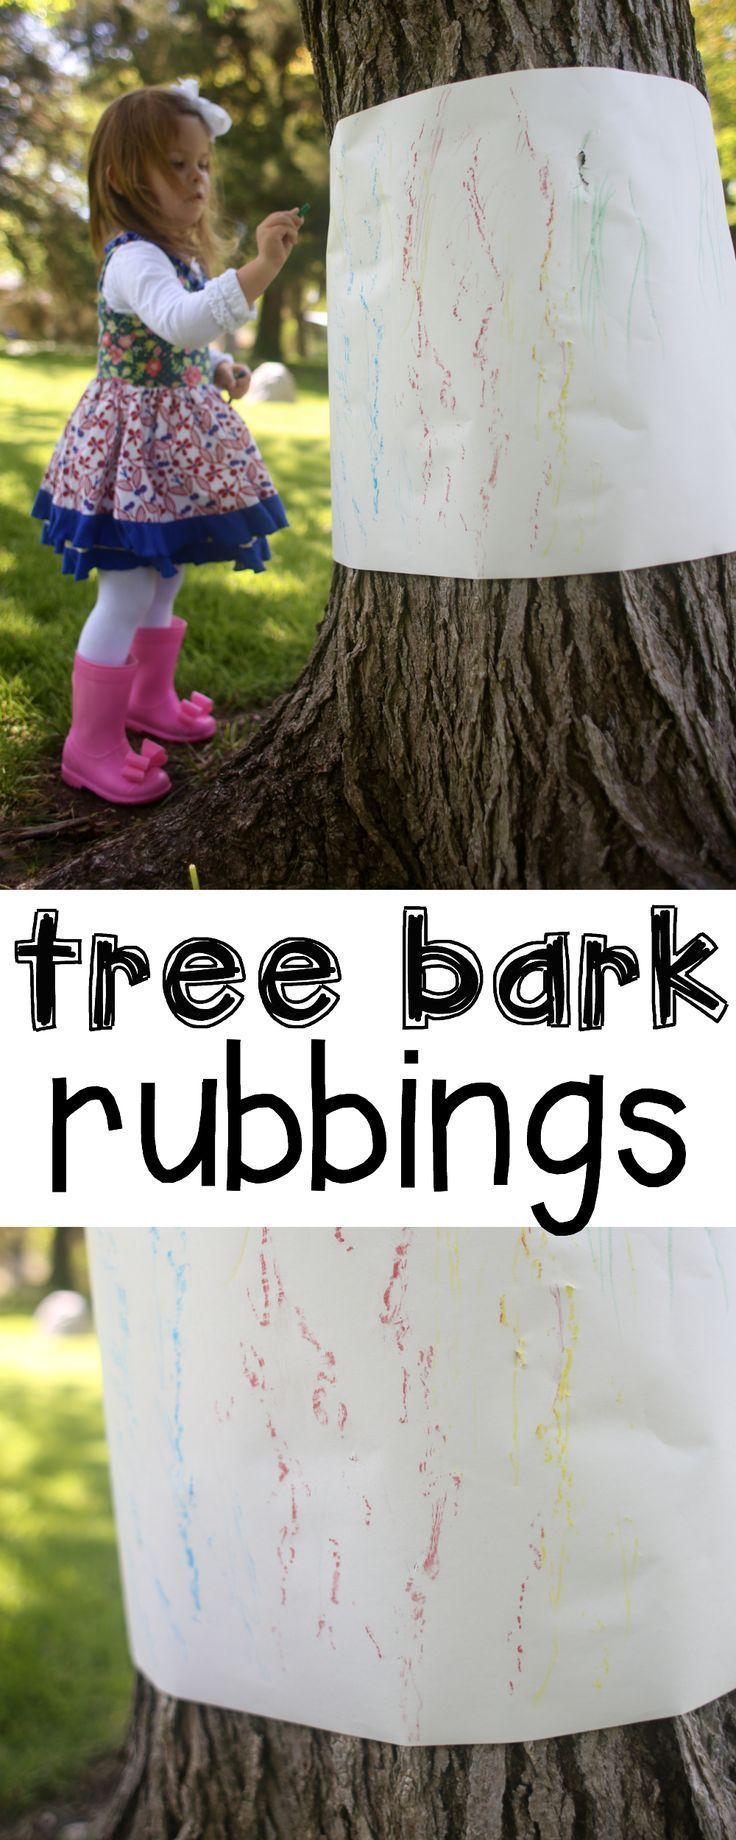 Tree Bark Rubbings:  Such a simple and interactive outdoor activity for toddlers and preschoolers! #site:artistandcraftsman.website